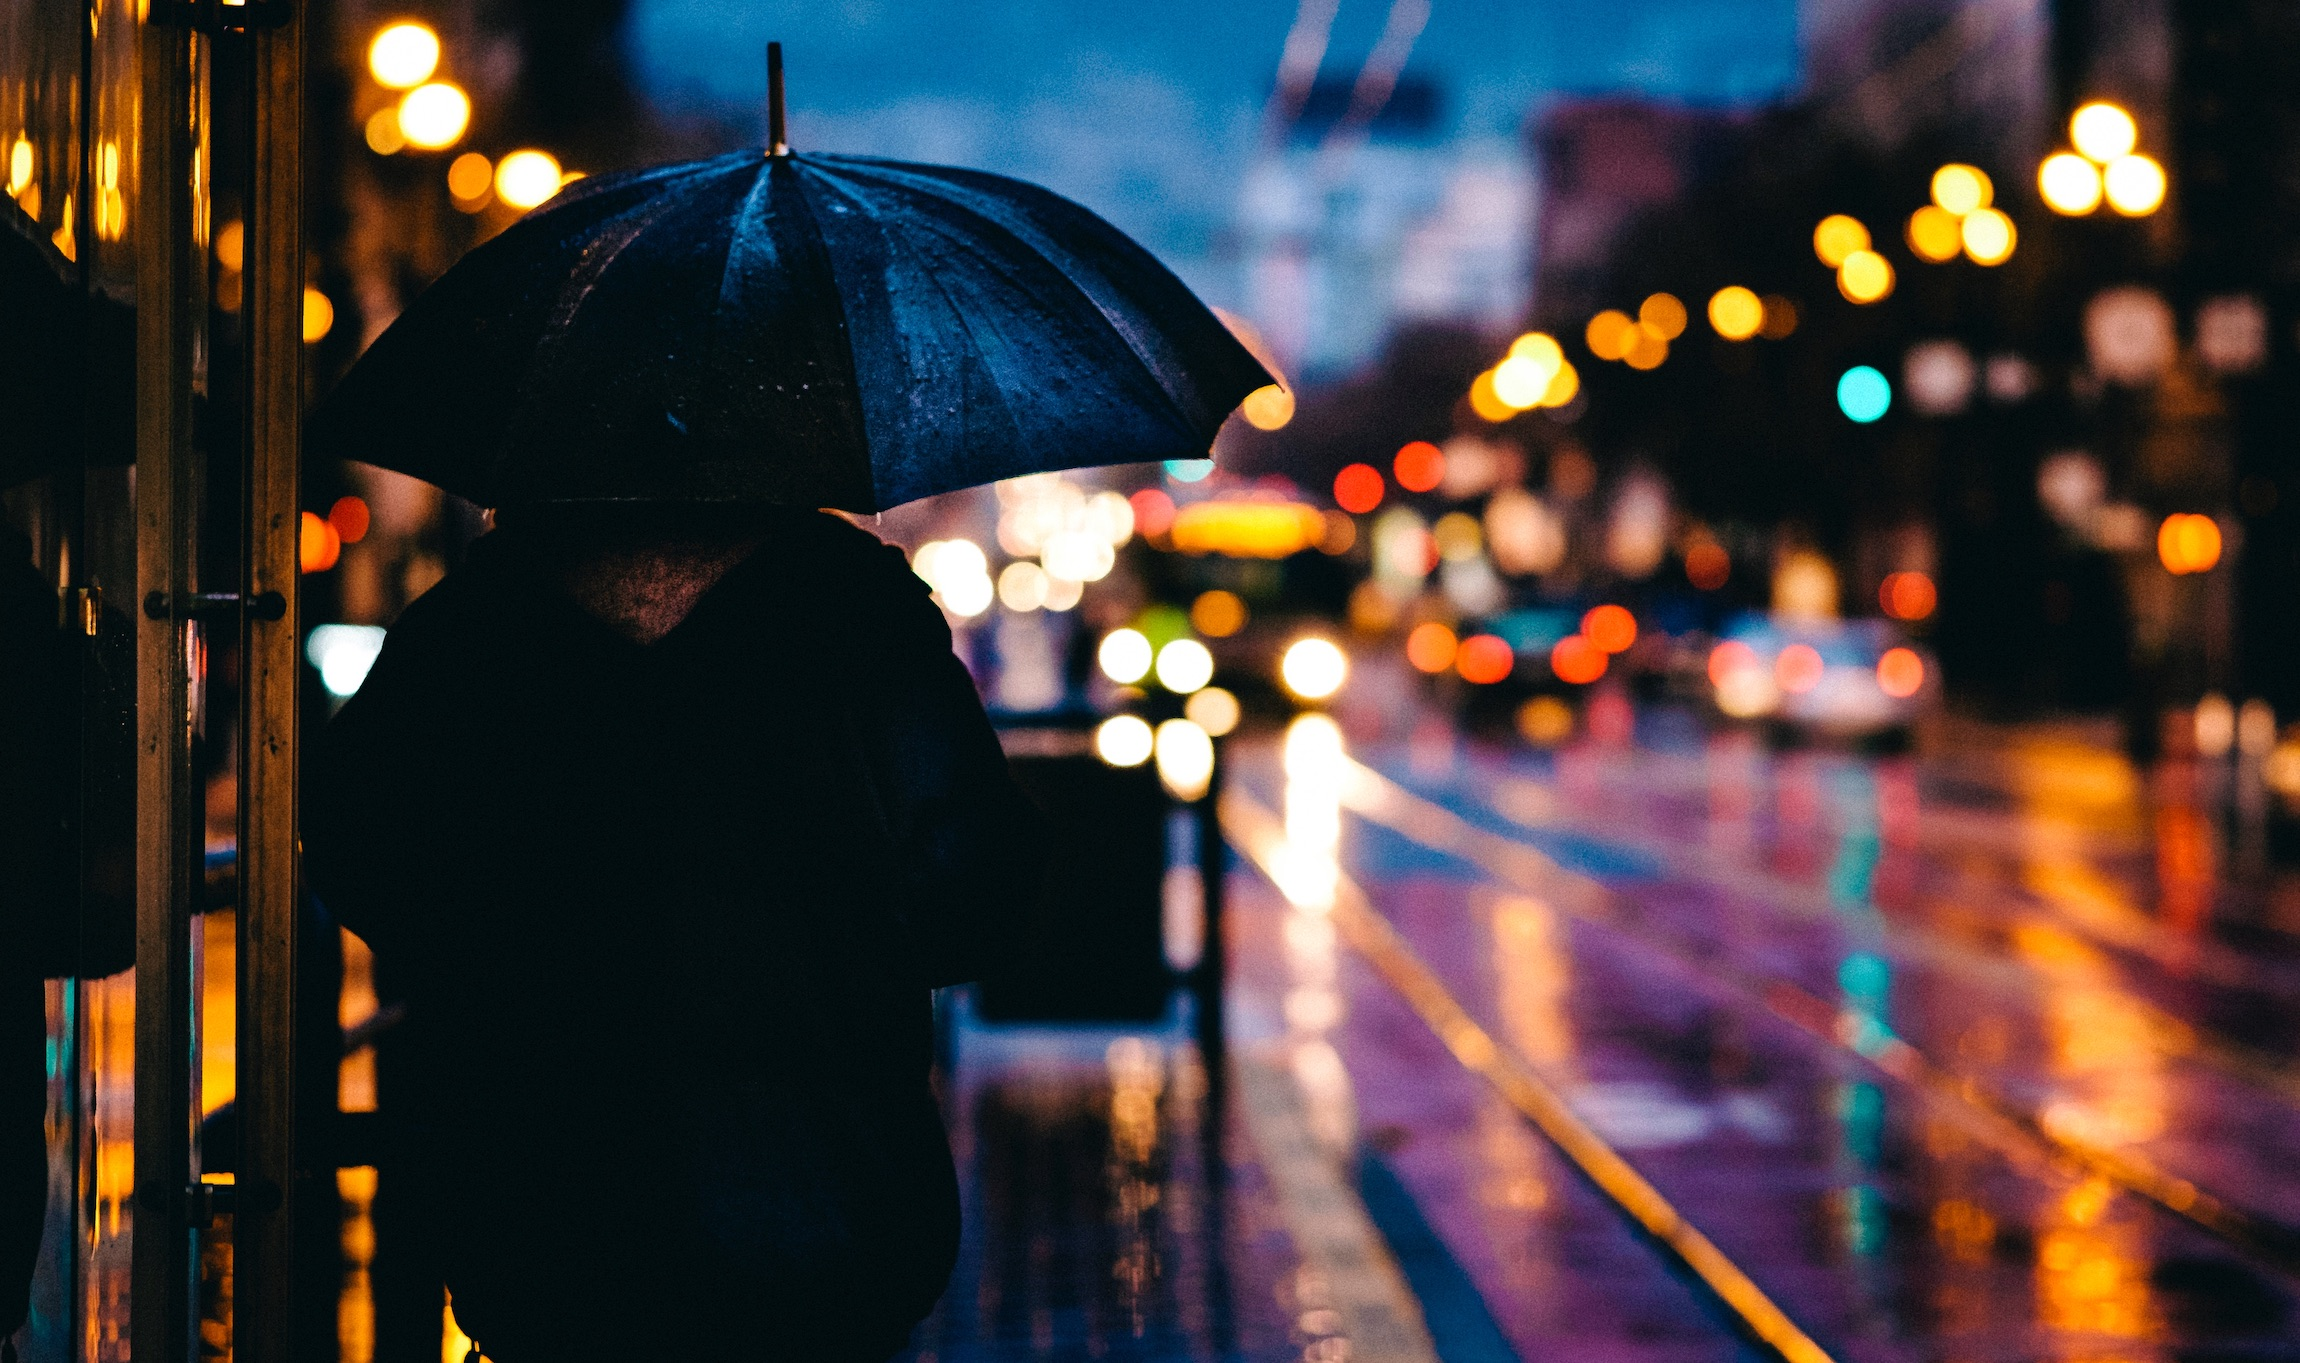 Cloaked man under an umbrella on a sidewalk near bright lights